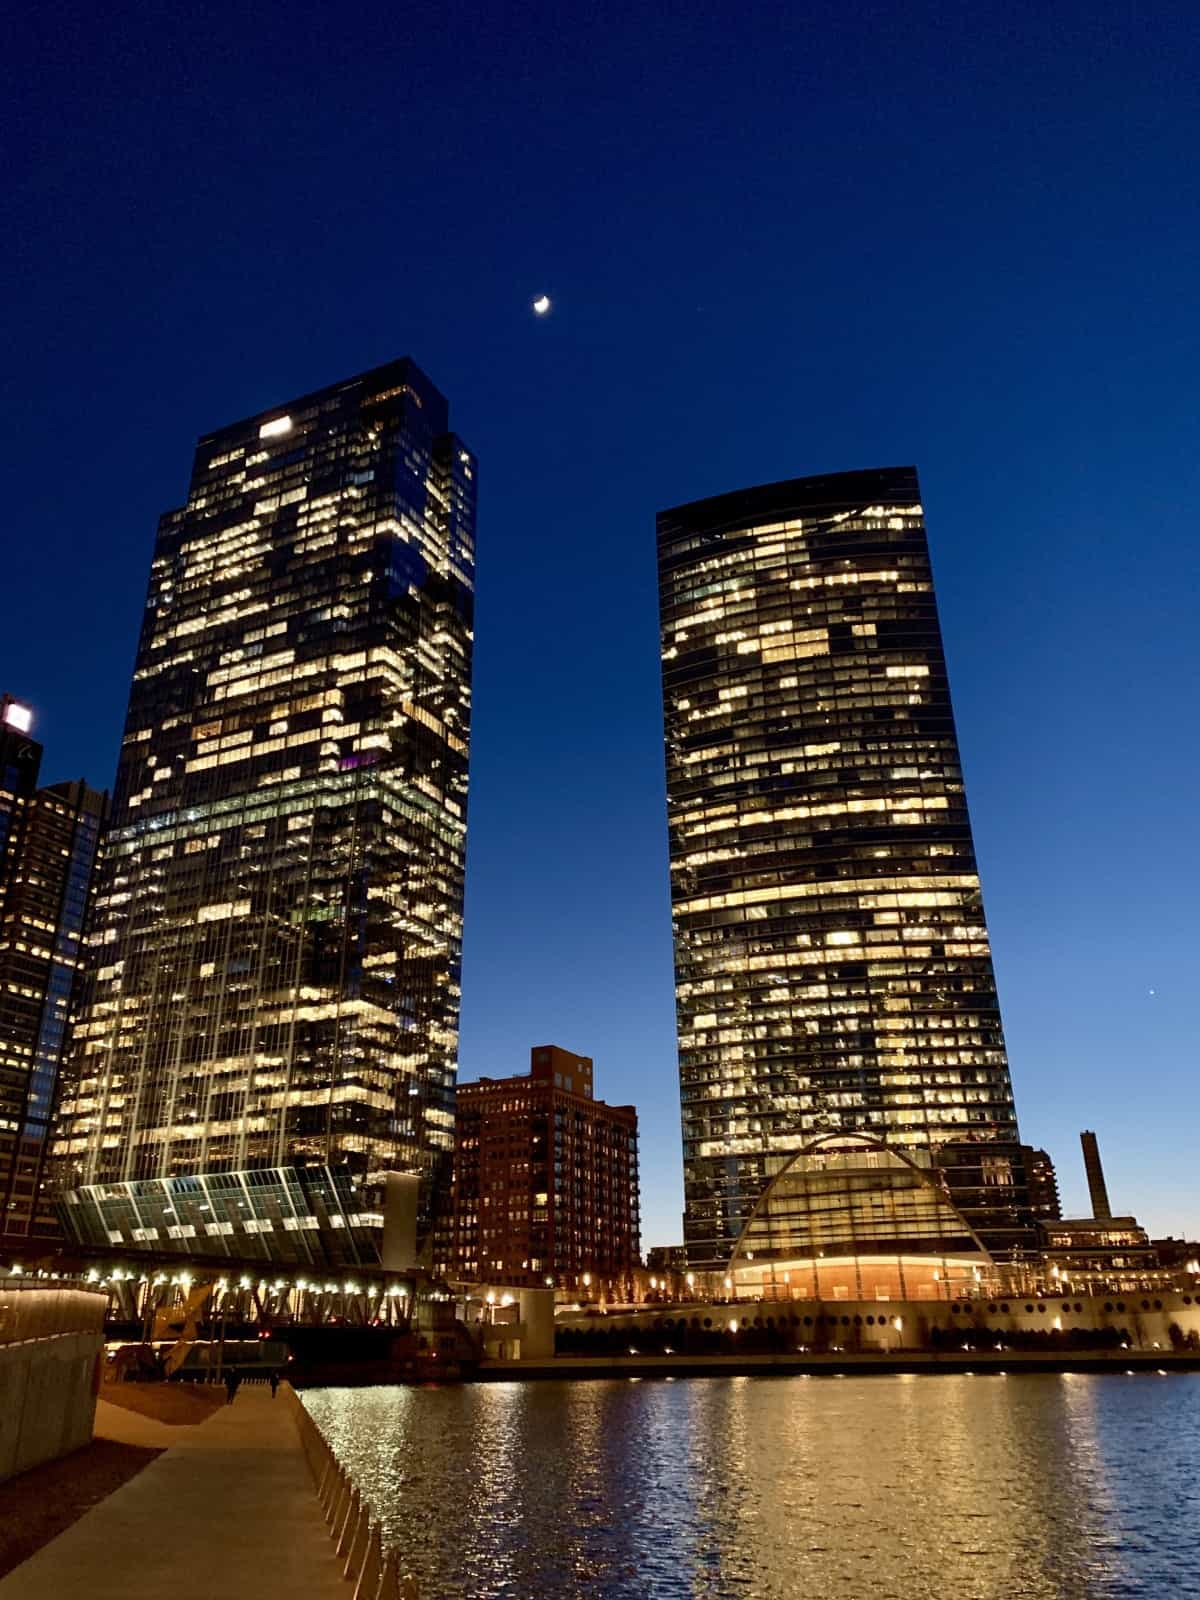 What to do in Chicago - make sure to spend some time on the Riverwalk at night